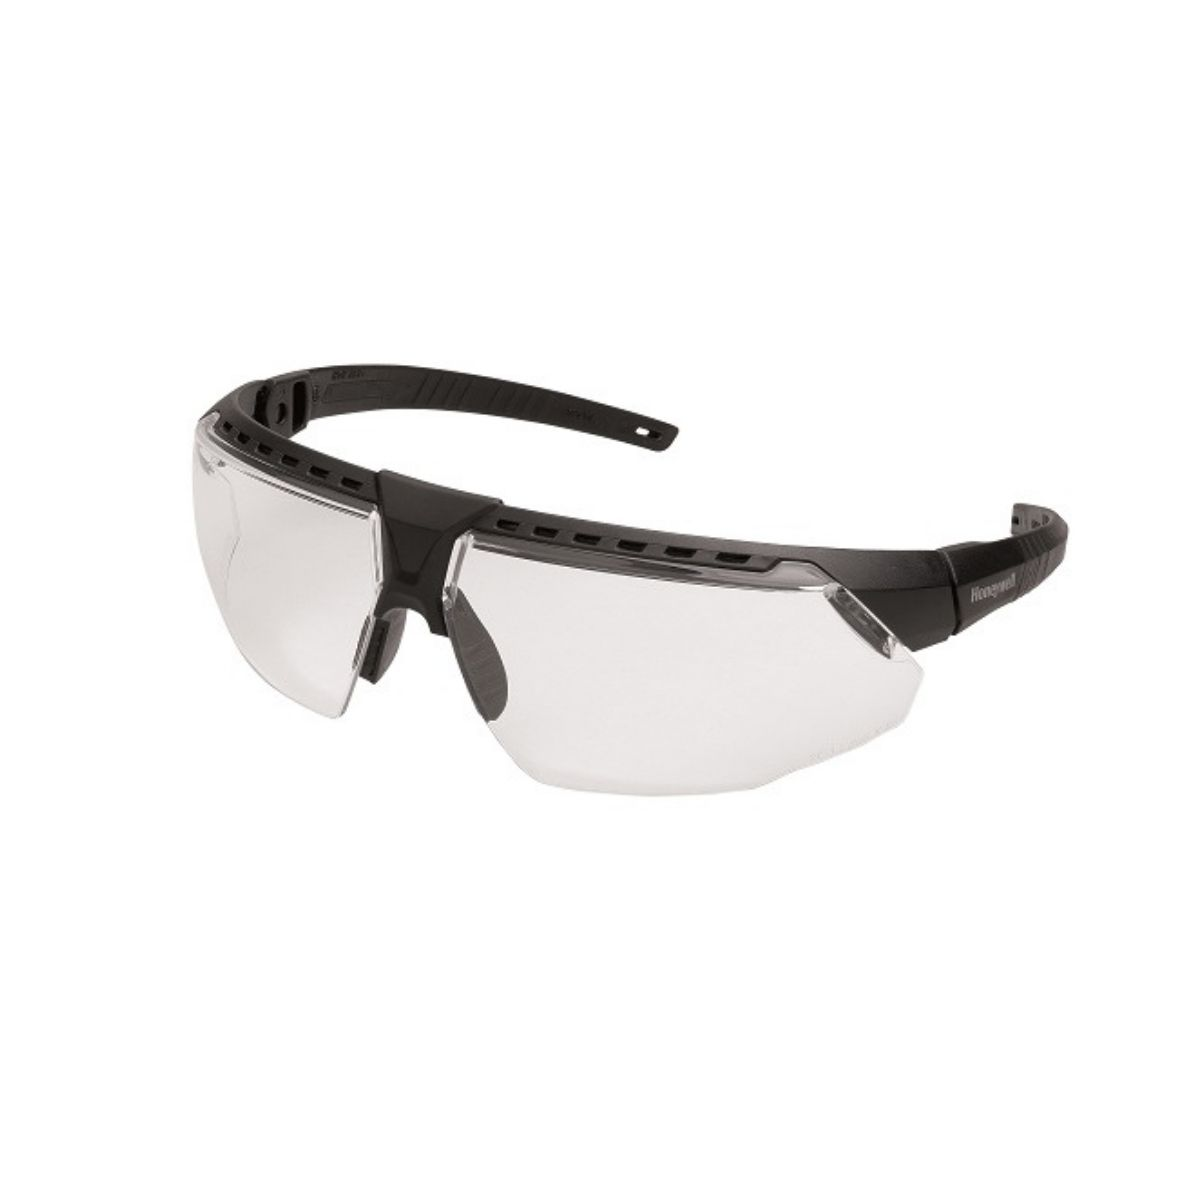 SWP Avatar Clear Lens 1034831   With flexible and easily adaptable nose clip and adjustable temples.   toolforce.ie